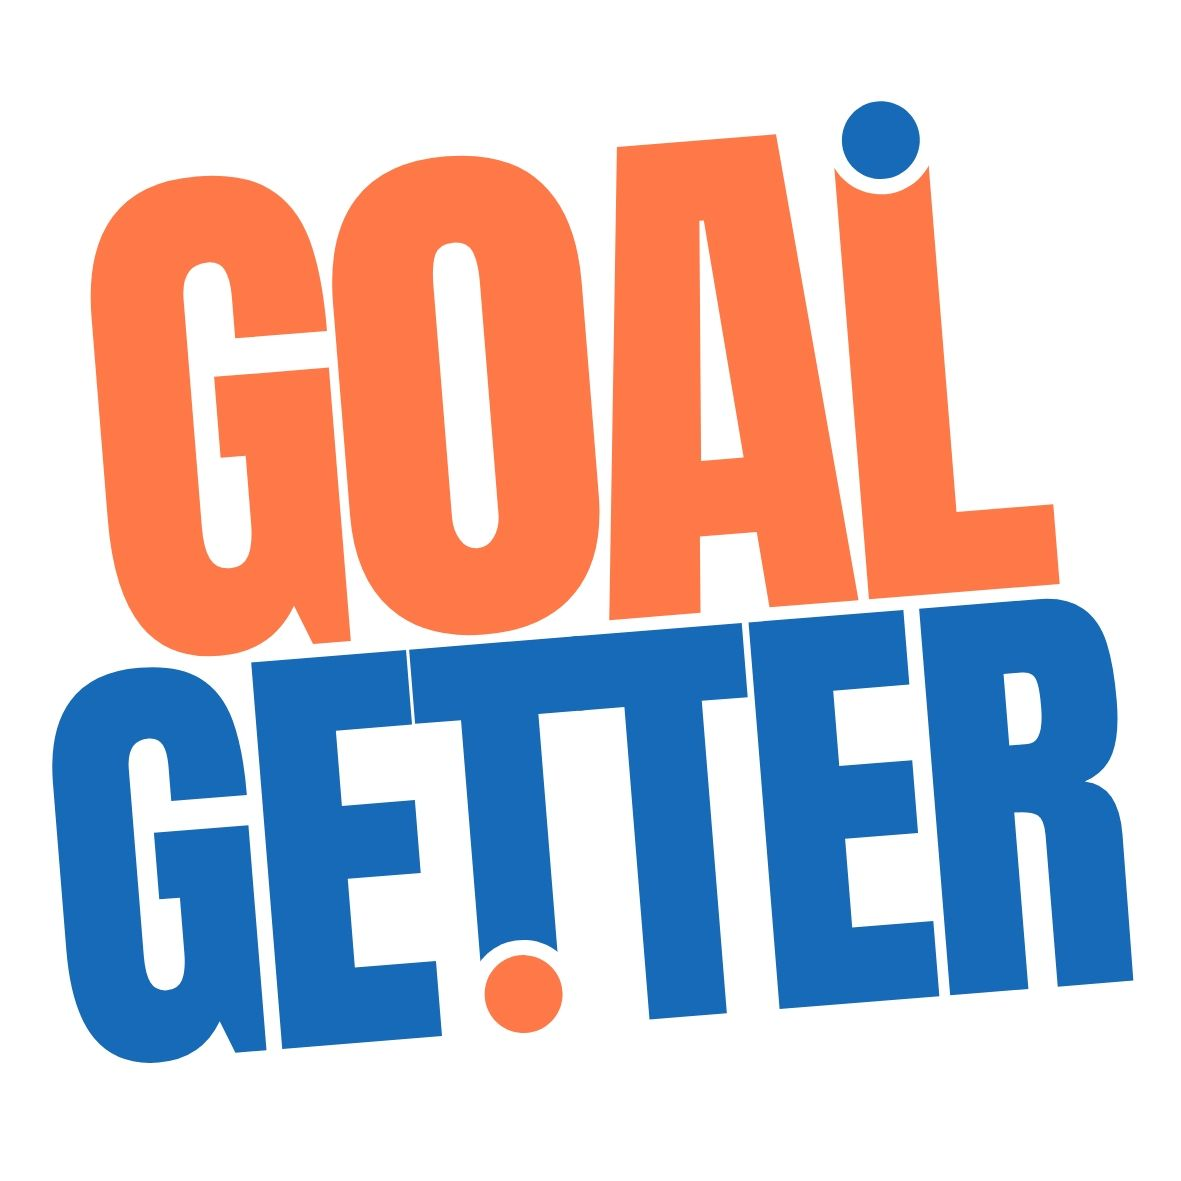 Richful Thinker's Goals For 2020. Applying The 5 Goal Types